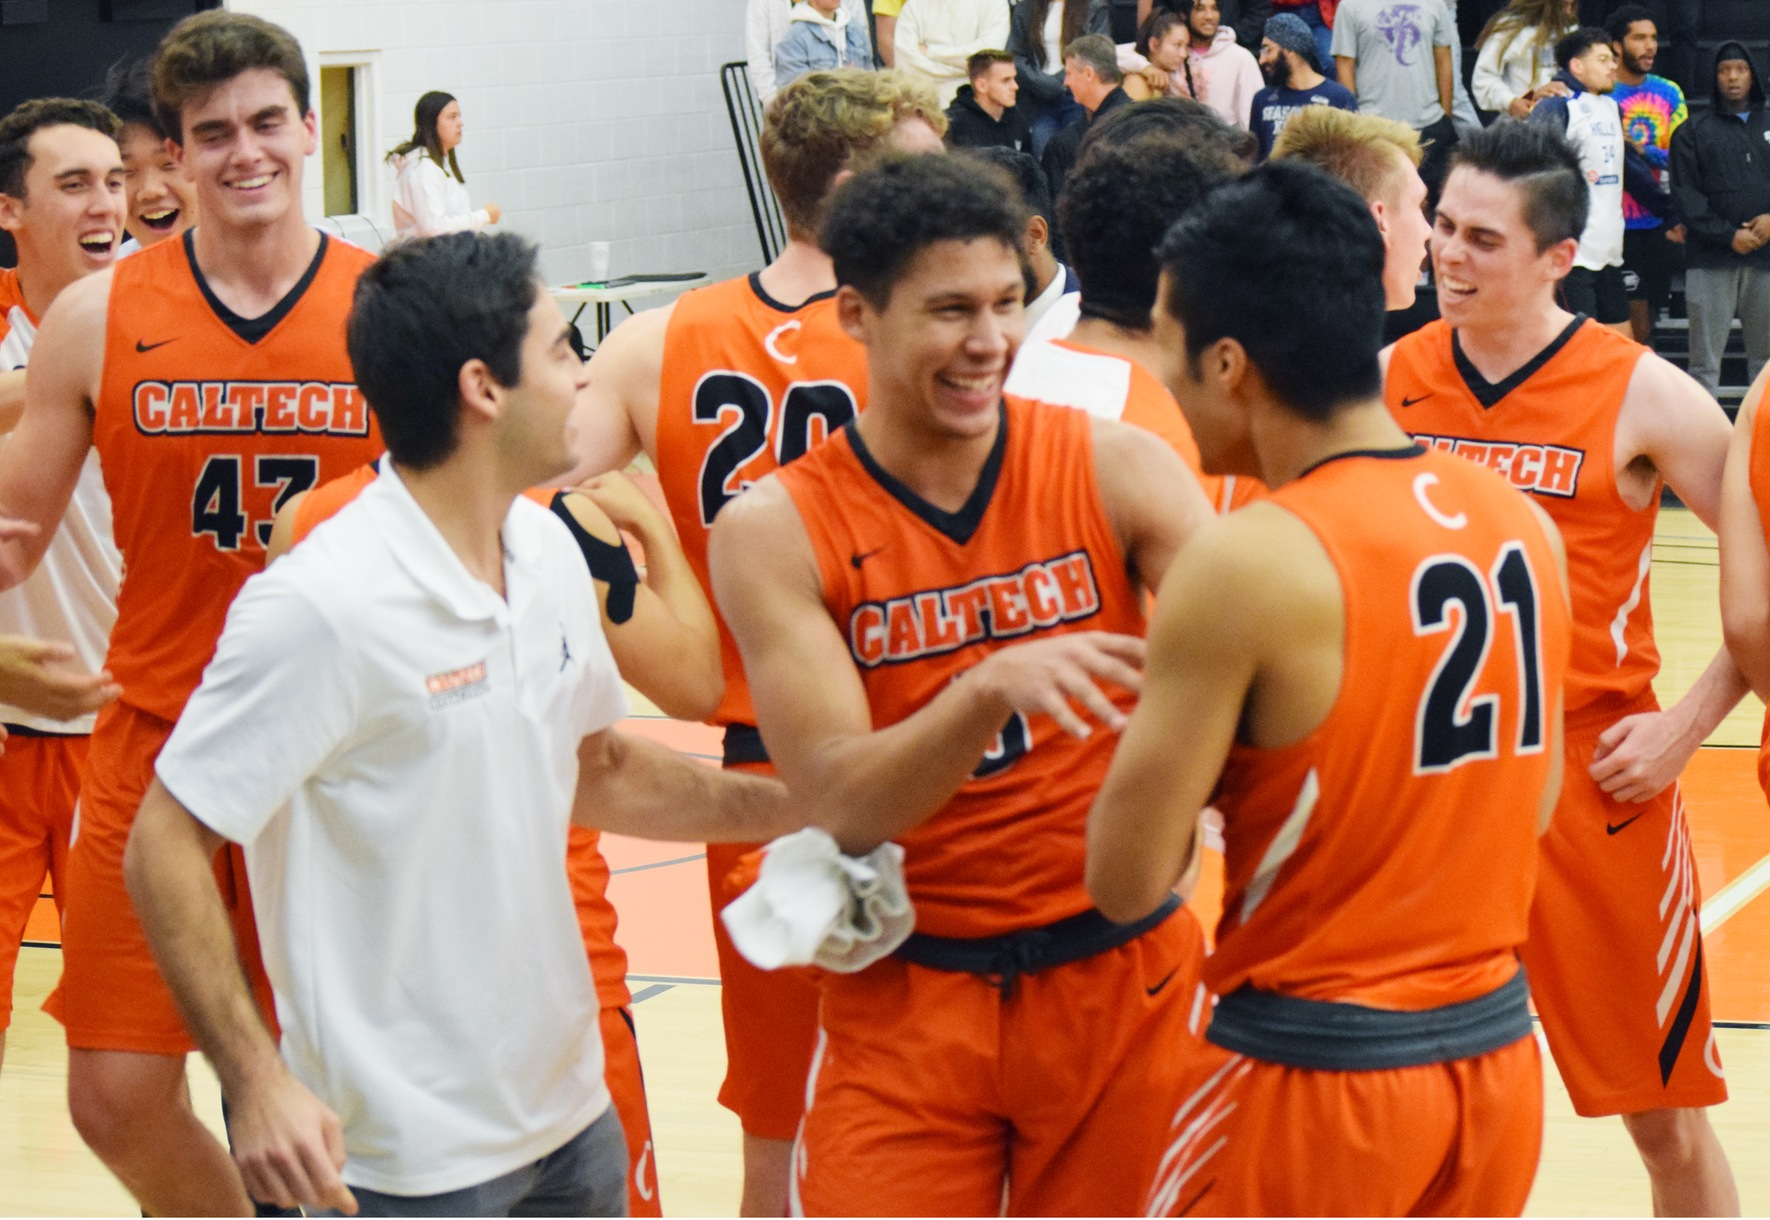 Caltech Holds Off Oxy in 110 Rivalry